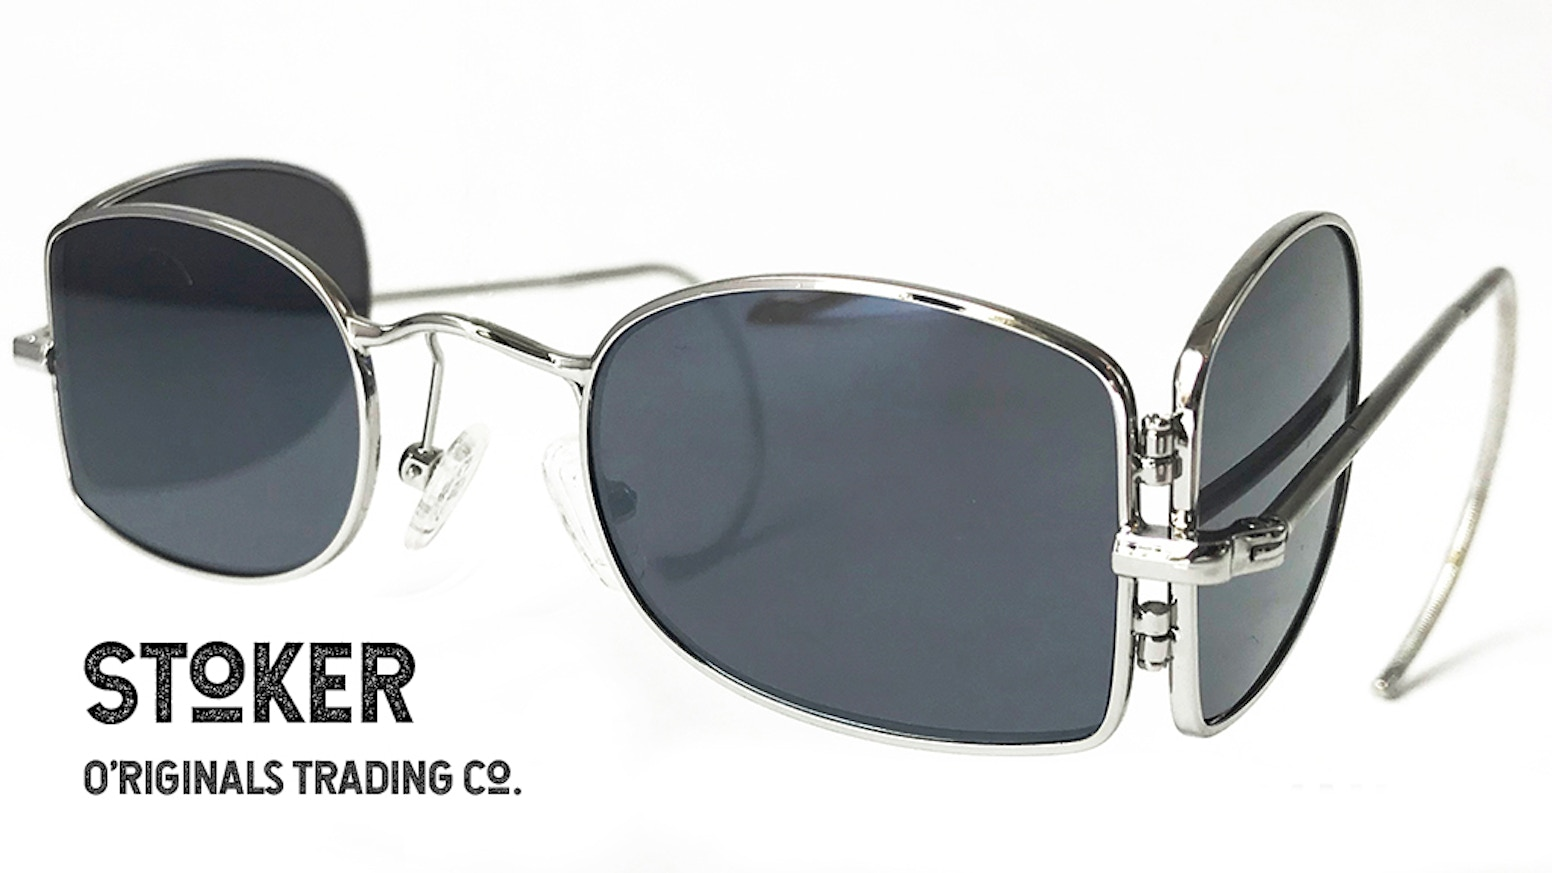 Stokers Sunglasses - Classic Look. Modern Style. by O\'Riginals ...